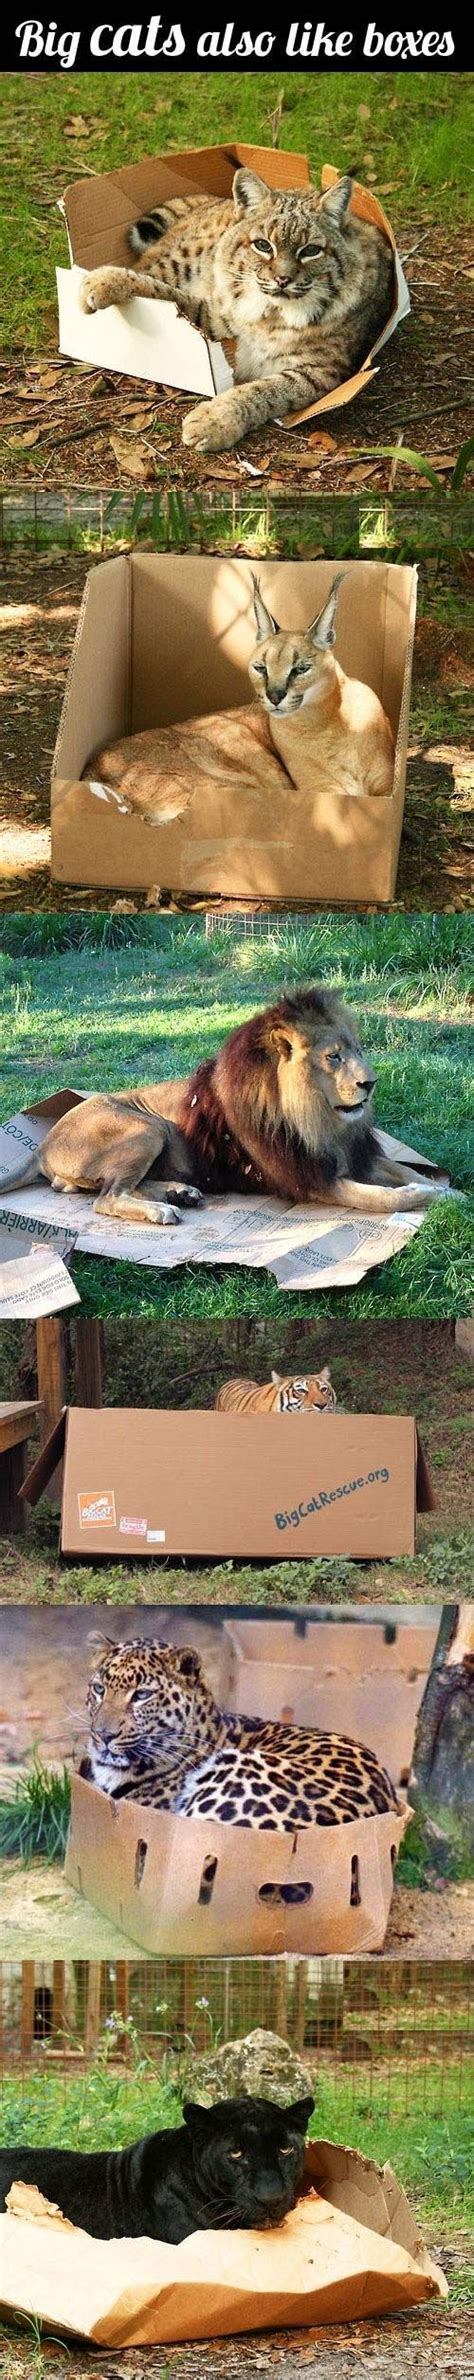 big cats in boxes big cats boxes